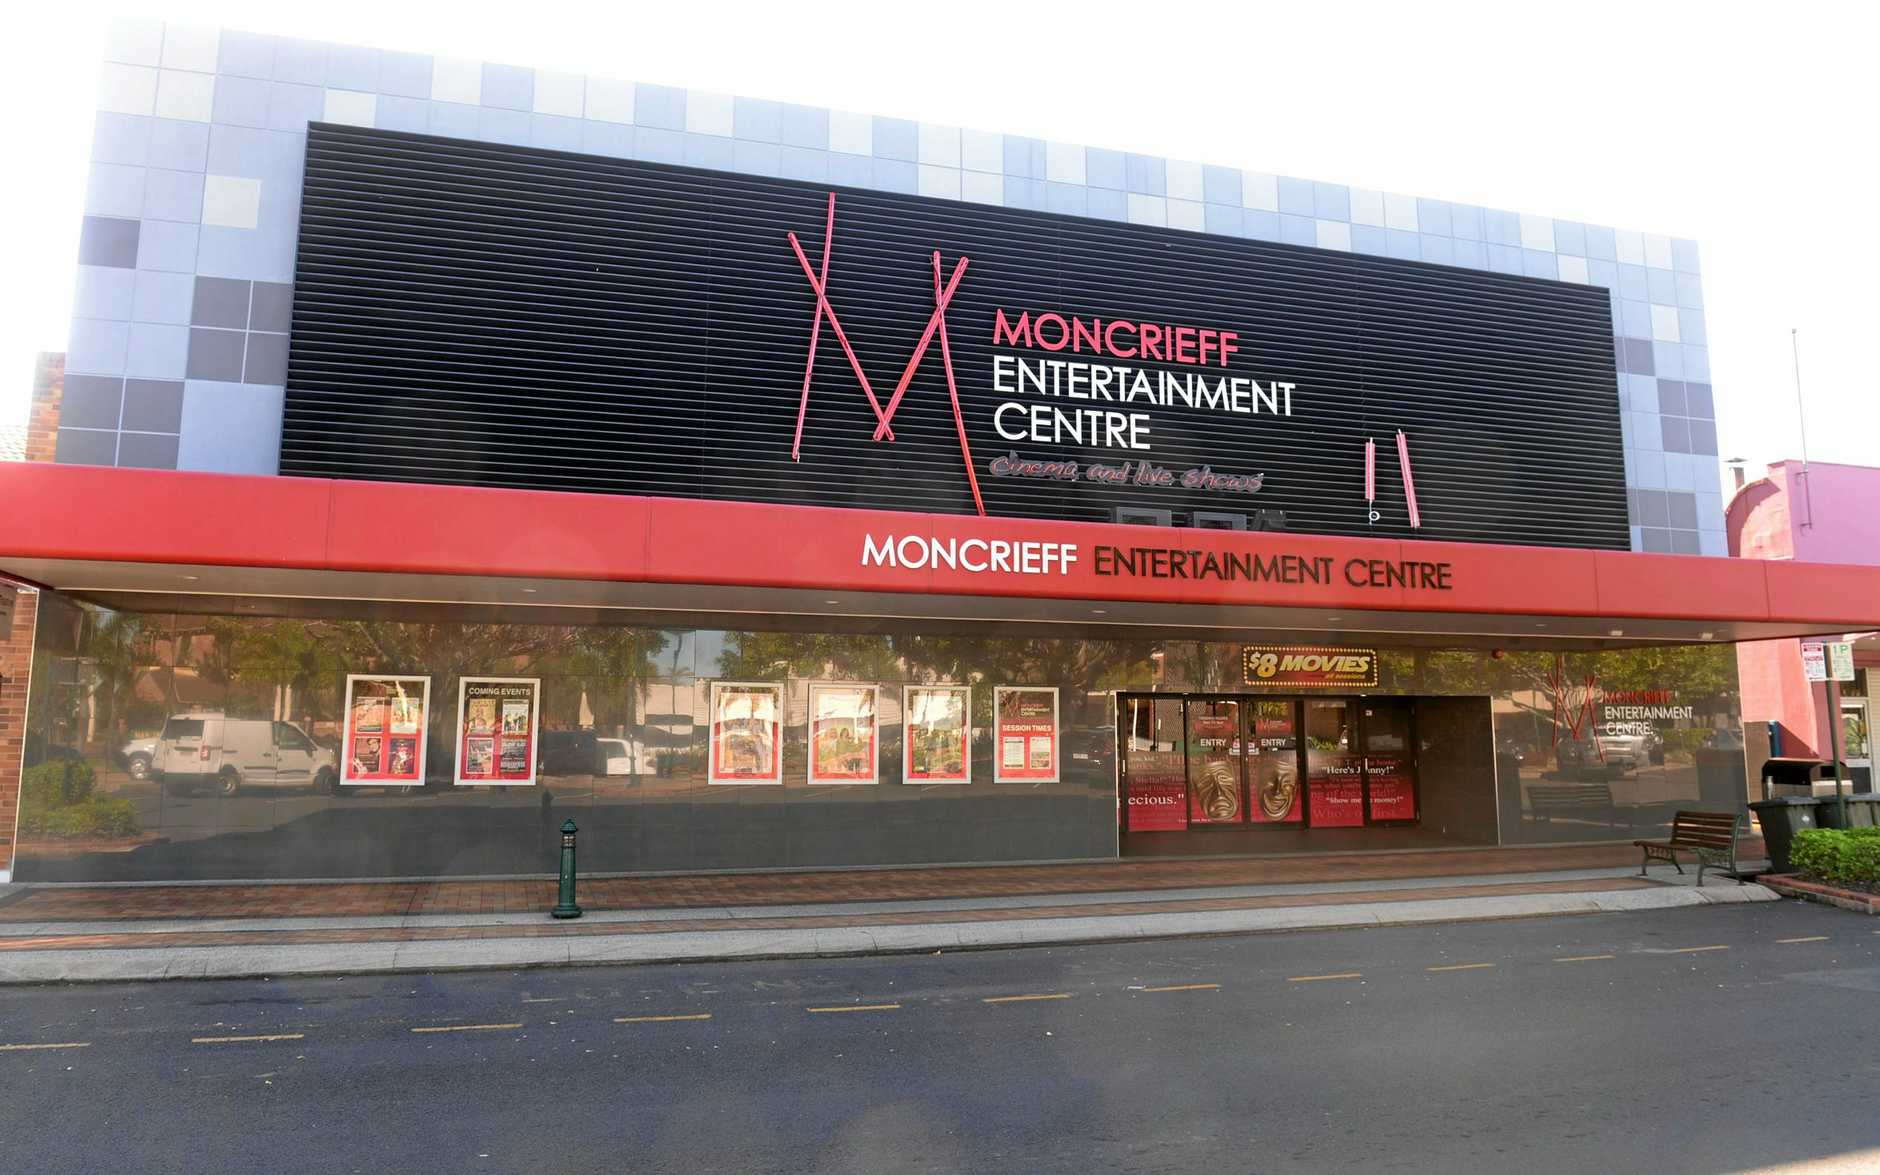 UPDATED: The Moncrieff Entertainment Centre.